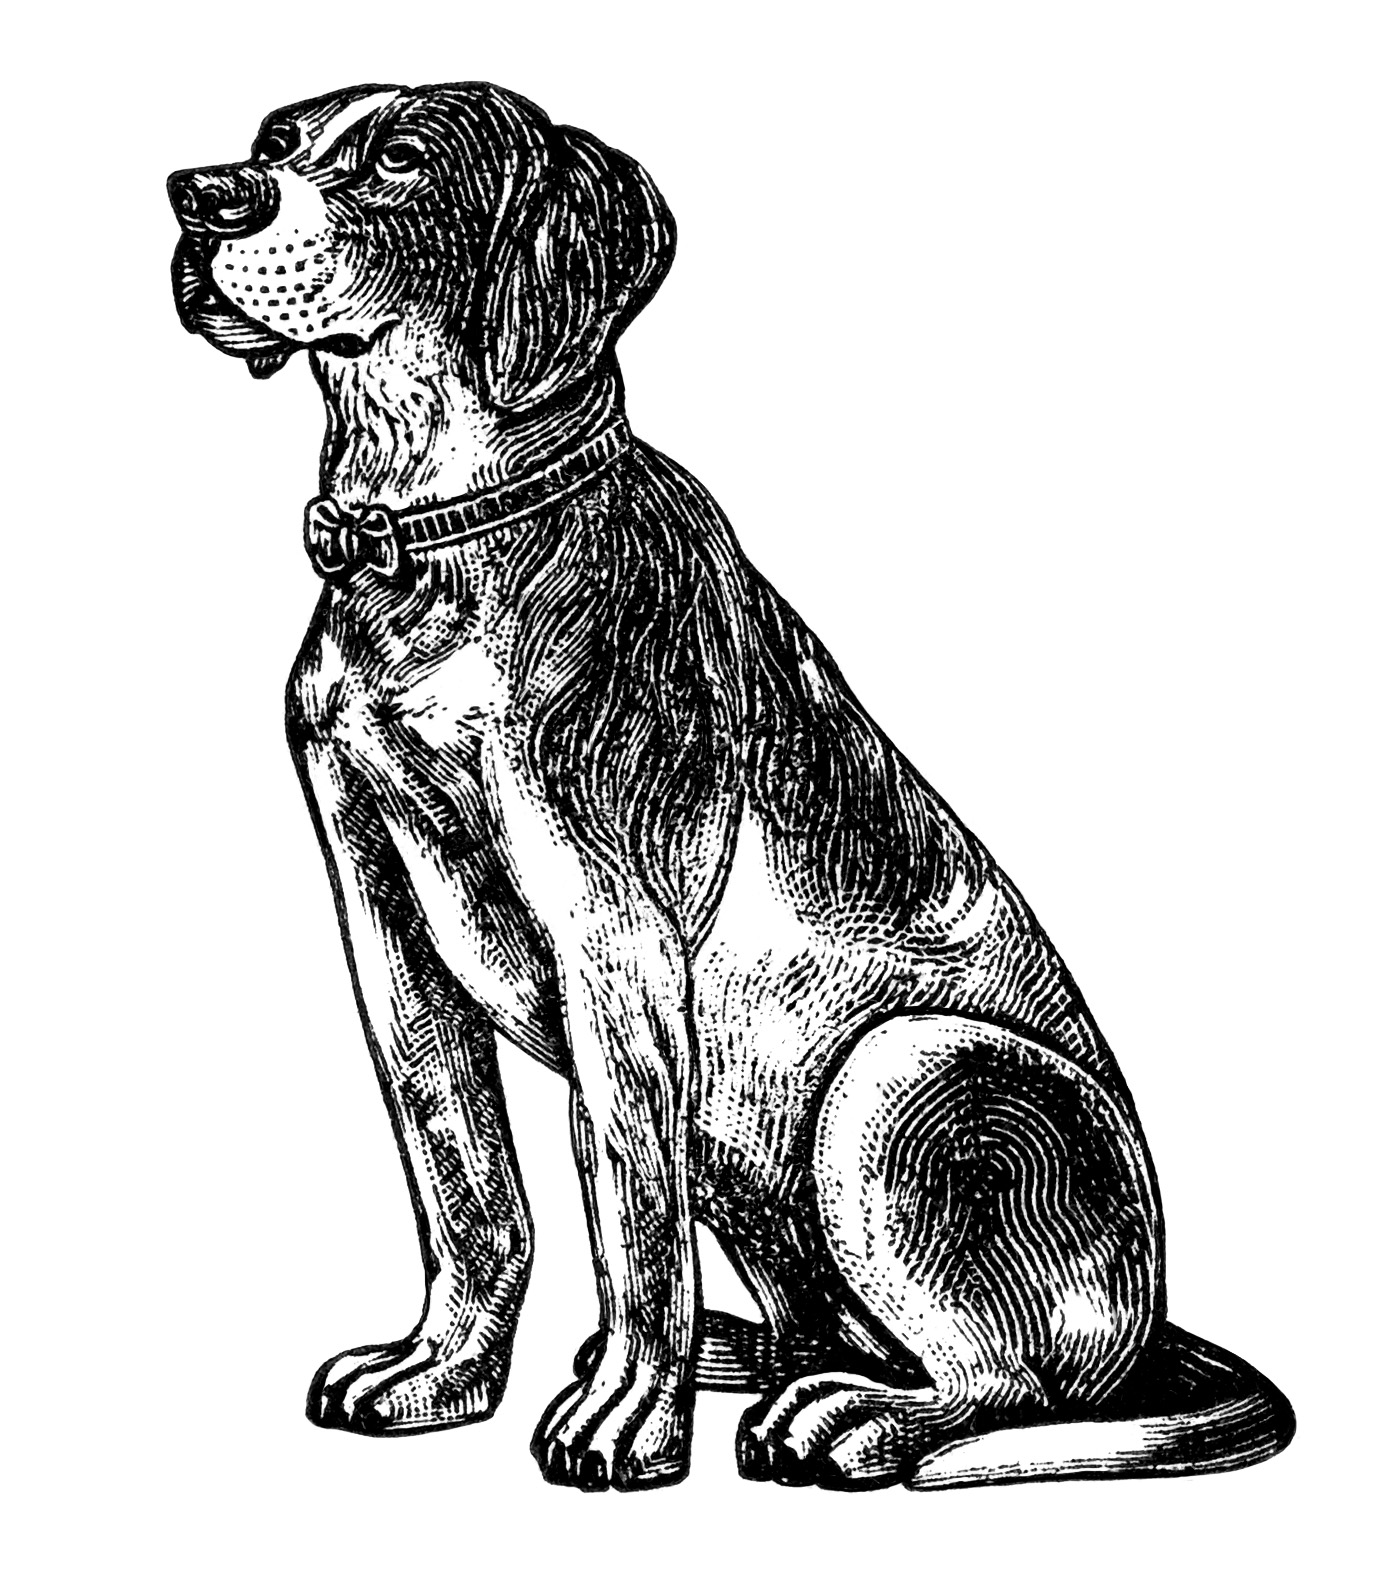 hight resolution of  free vintage dog clipart black and white clip art digital pet image dog